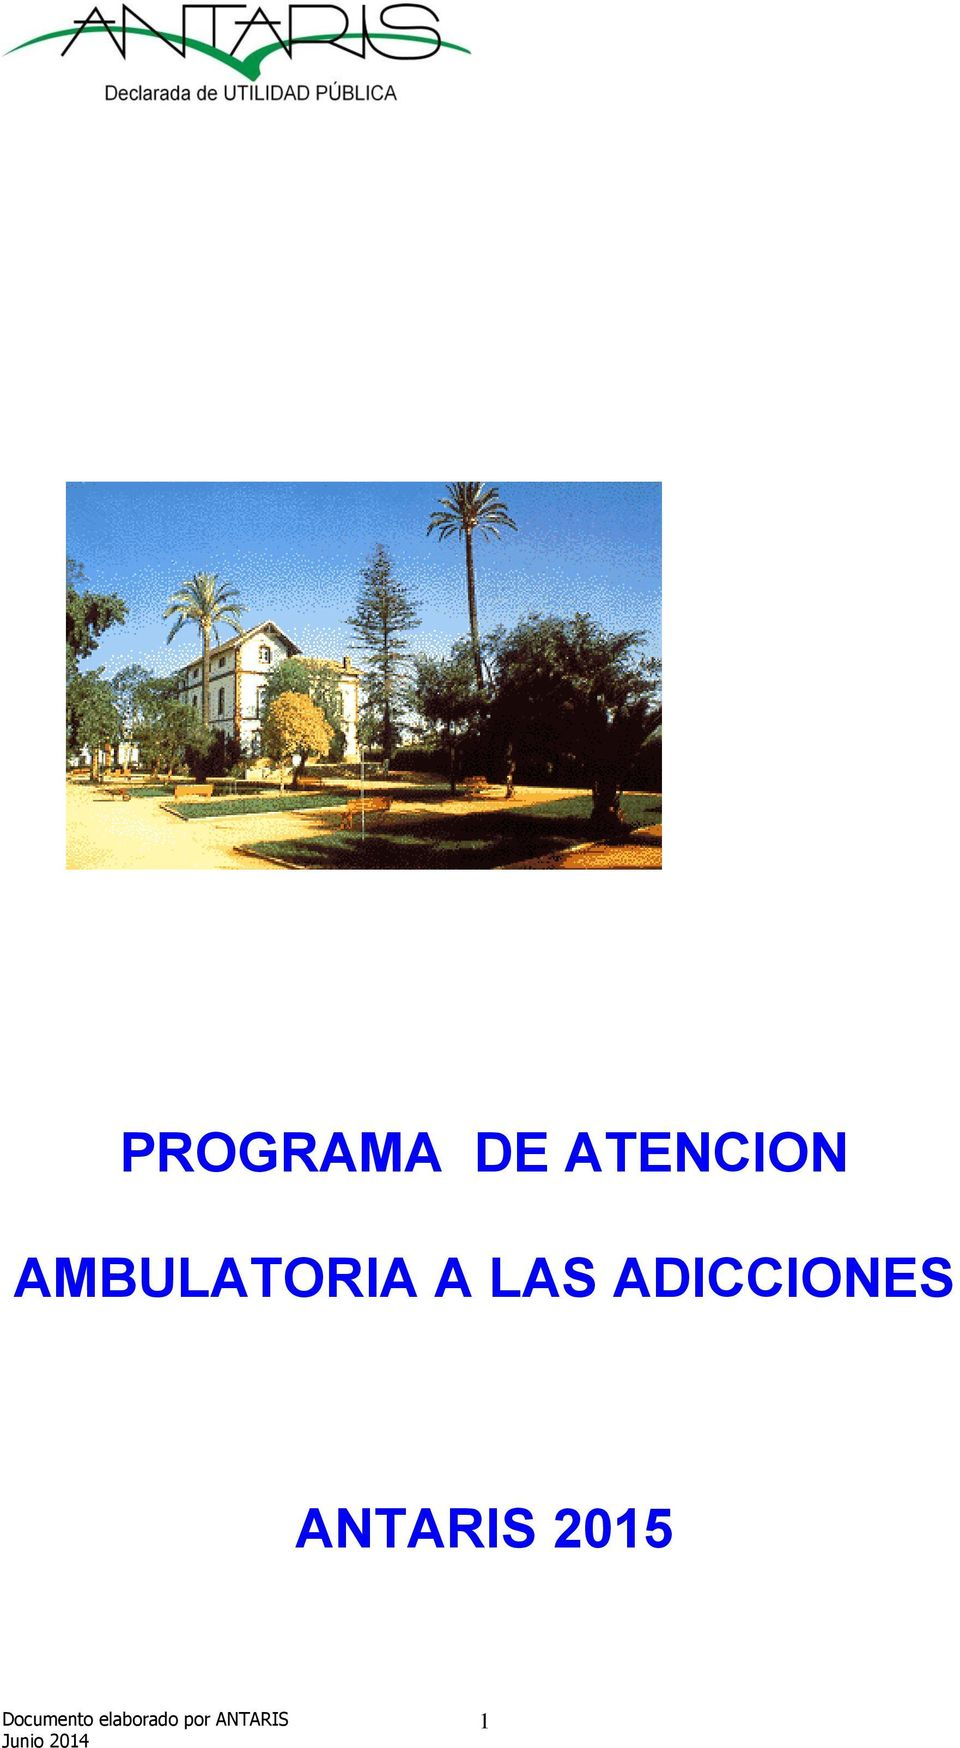 AMBULATORIA A